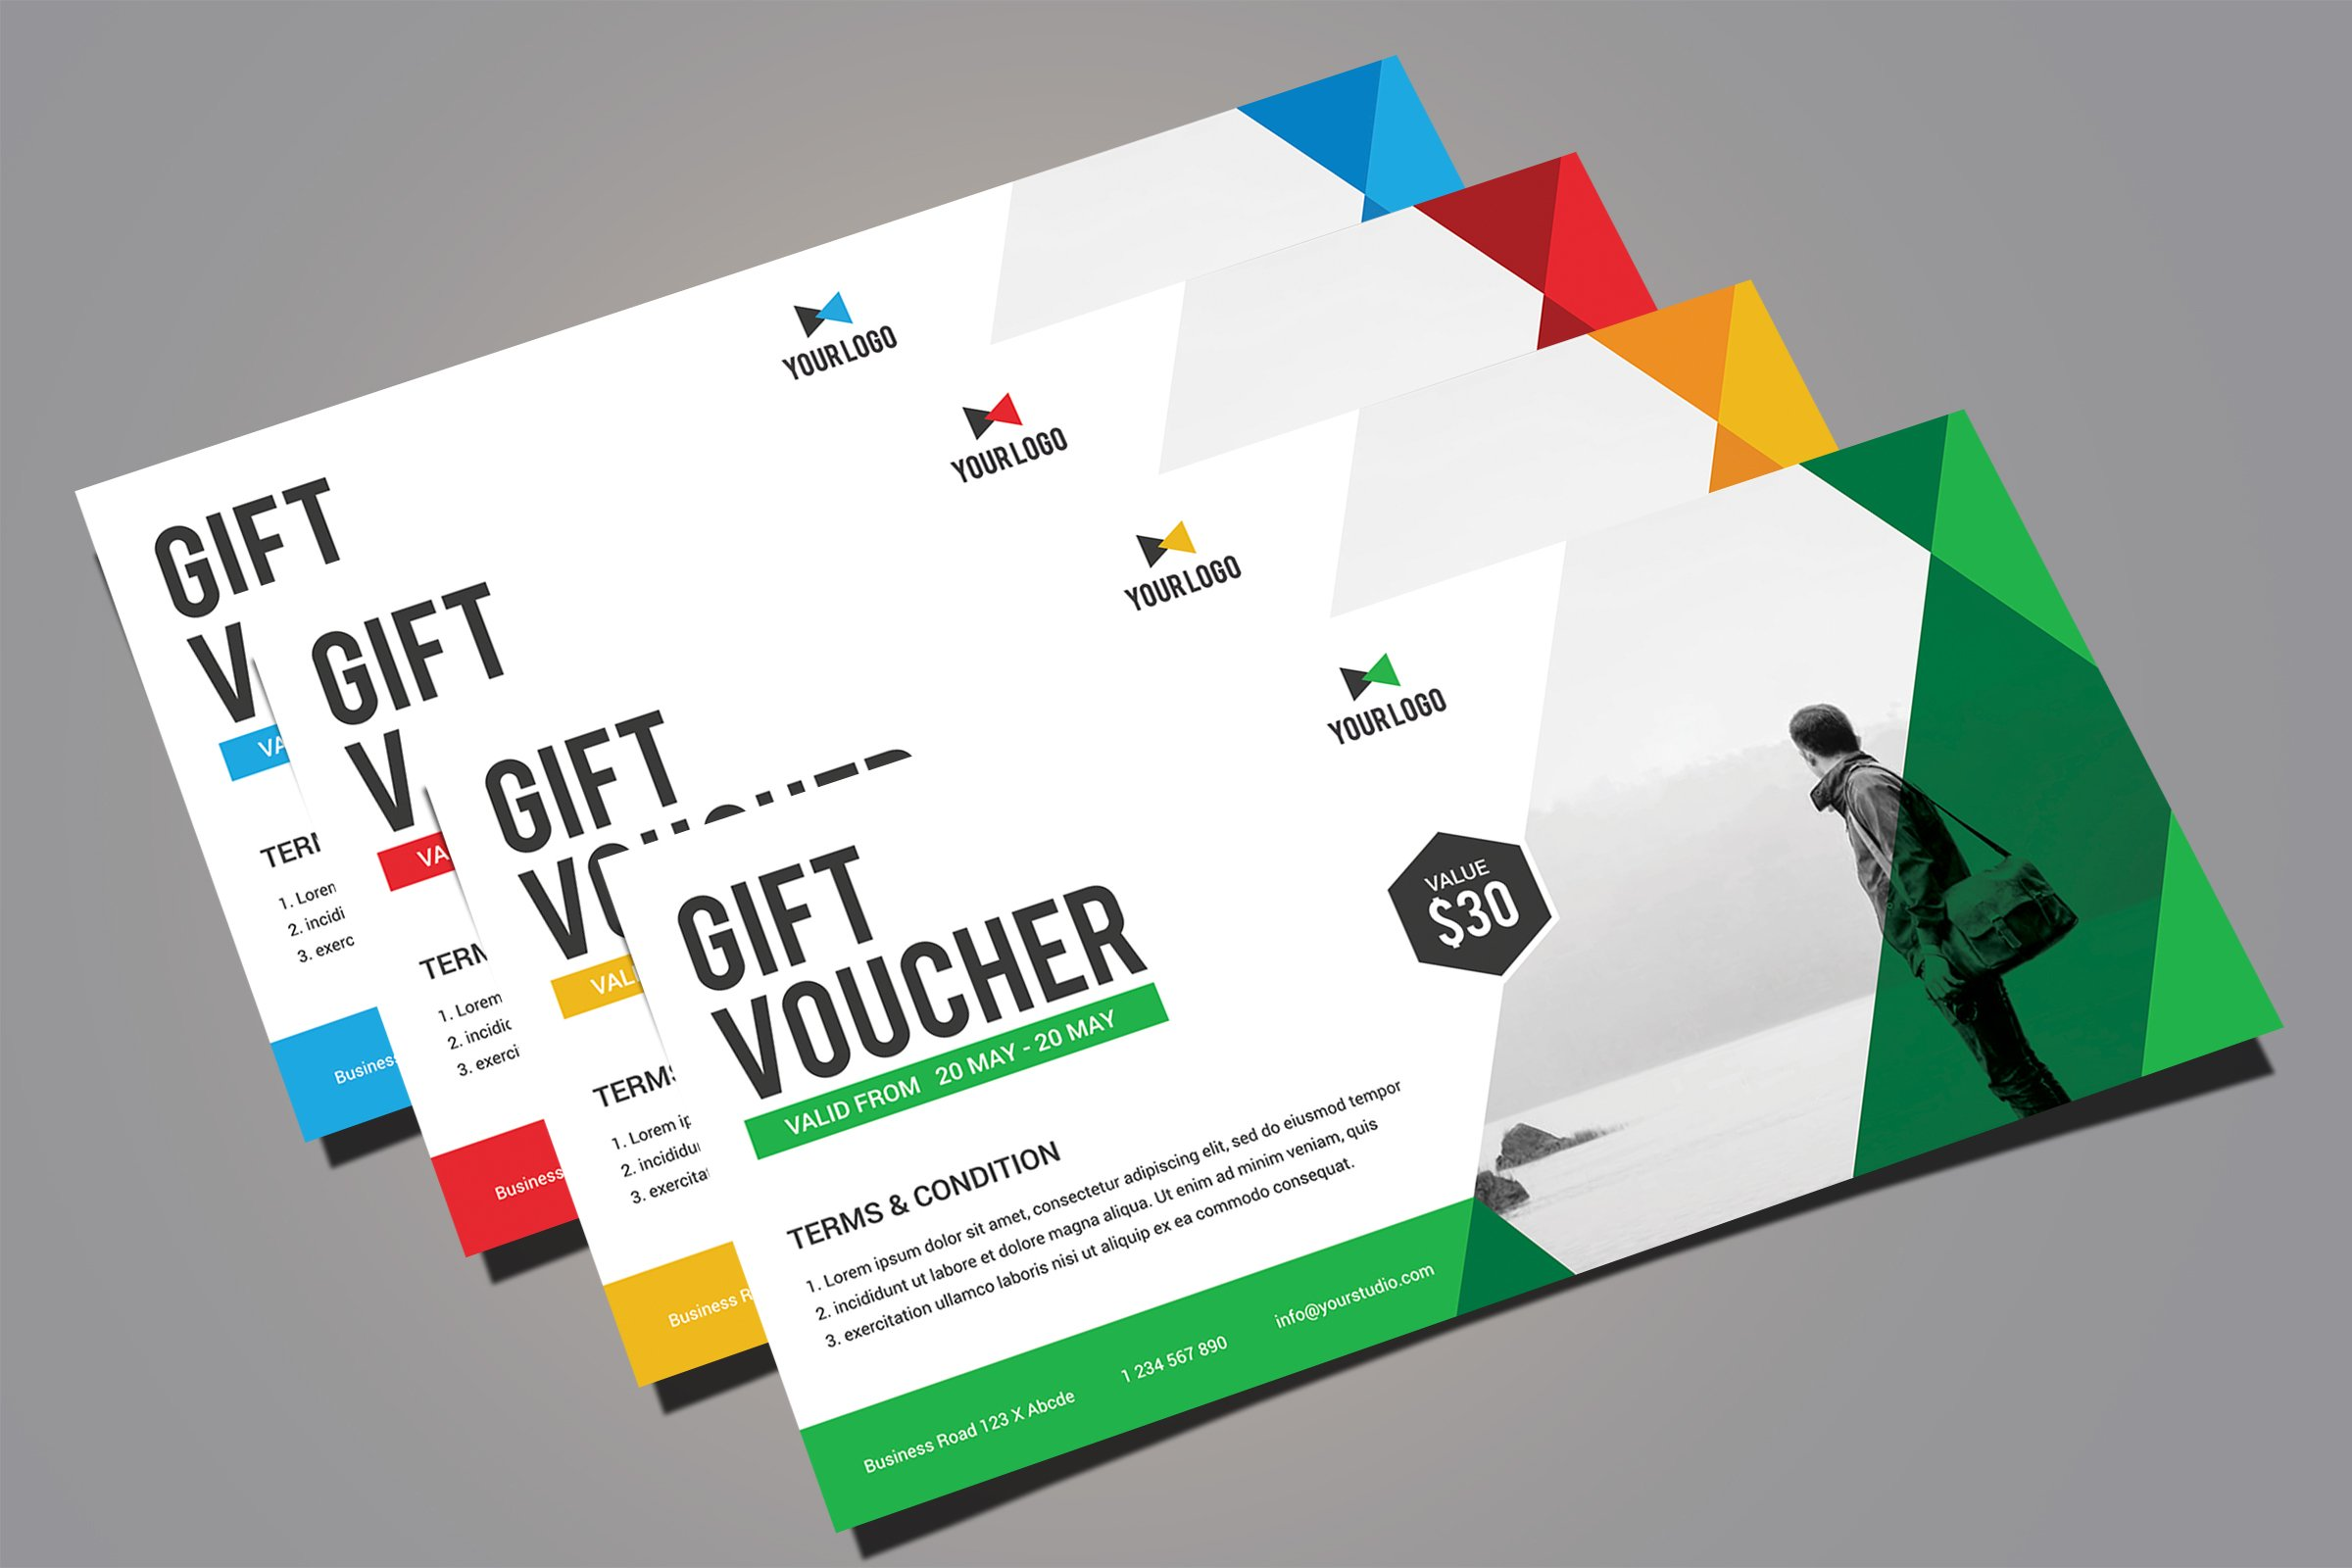 Gift card template photos graphics fonts themes templates 5 gift voucher by rongbaaz in templates yelopaper Choice Image